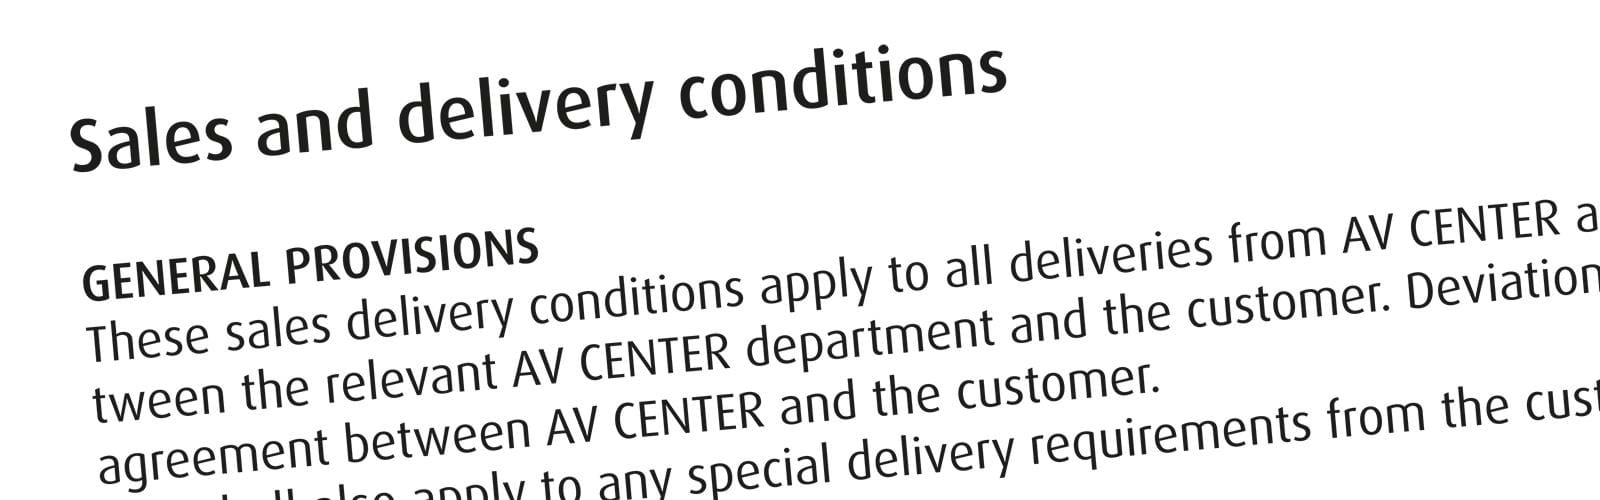 Part of text from sales and delivery conditions